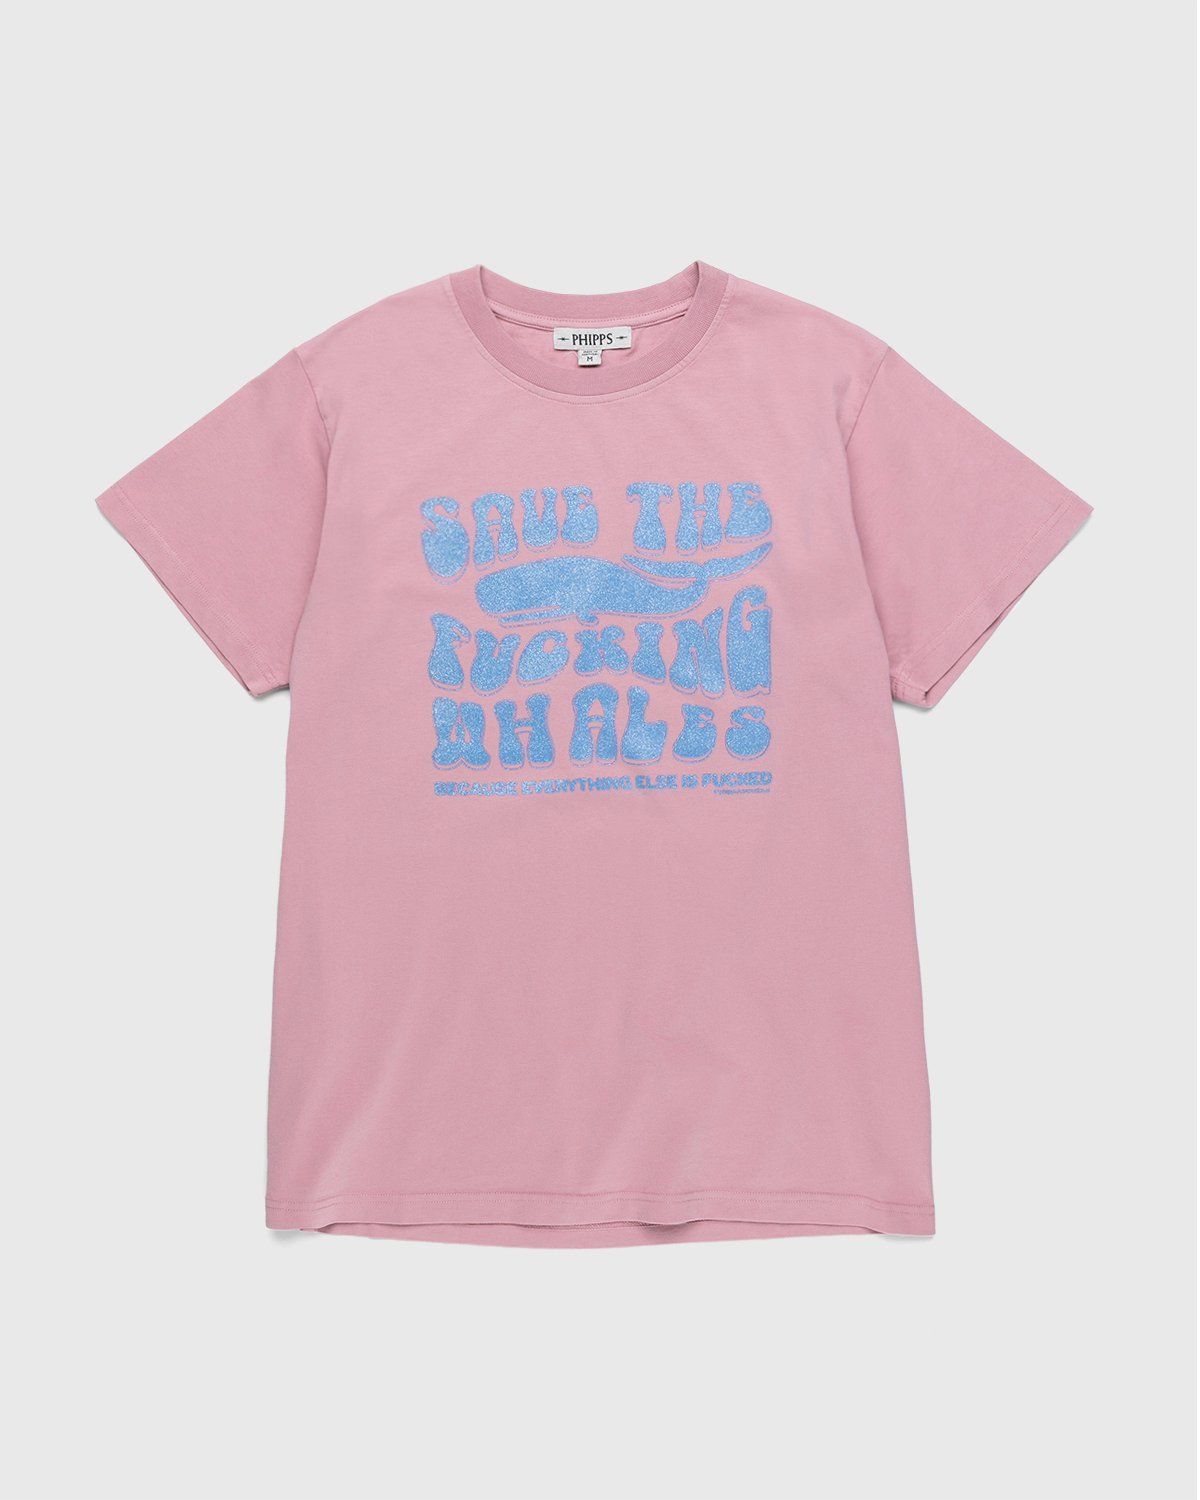 PHIPPS – Save The Fucking Whales T-Shirt Pink - Image 1